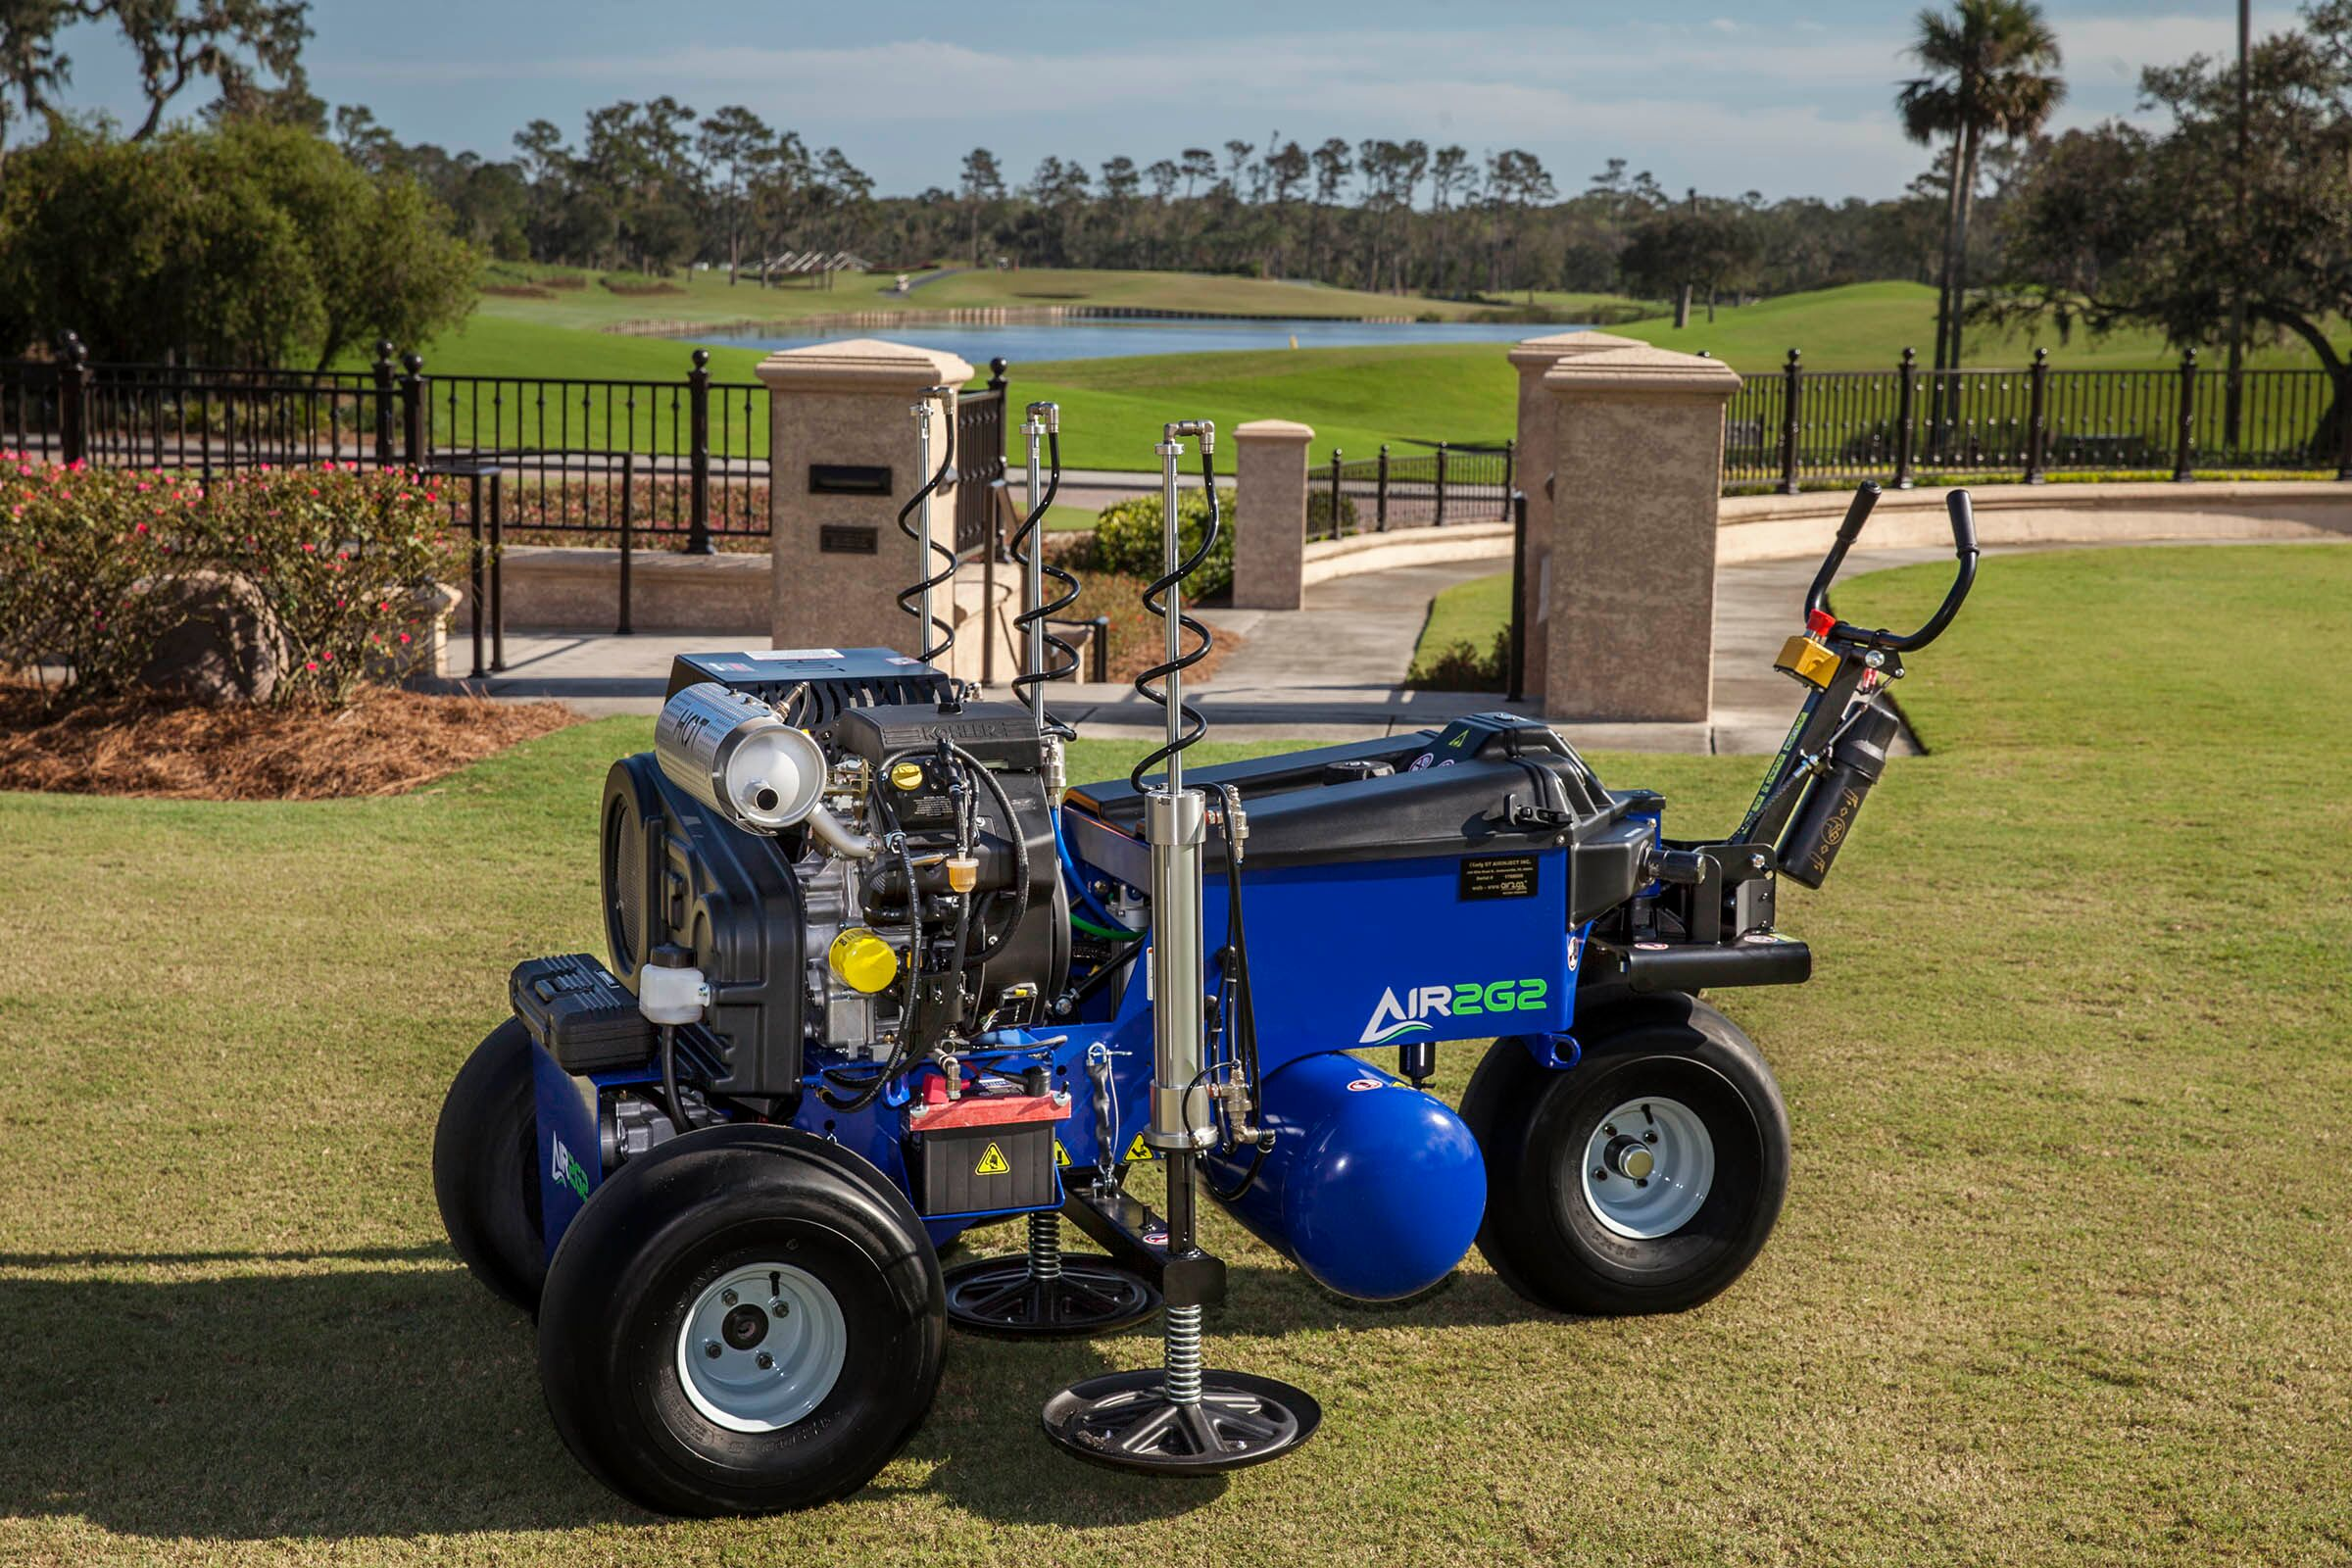 air2g2 best in class